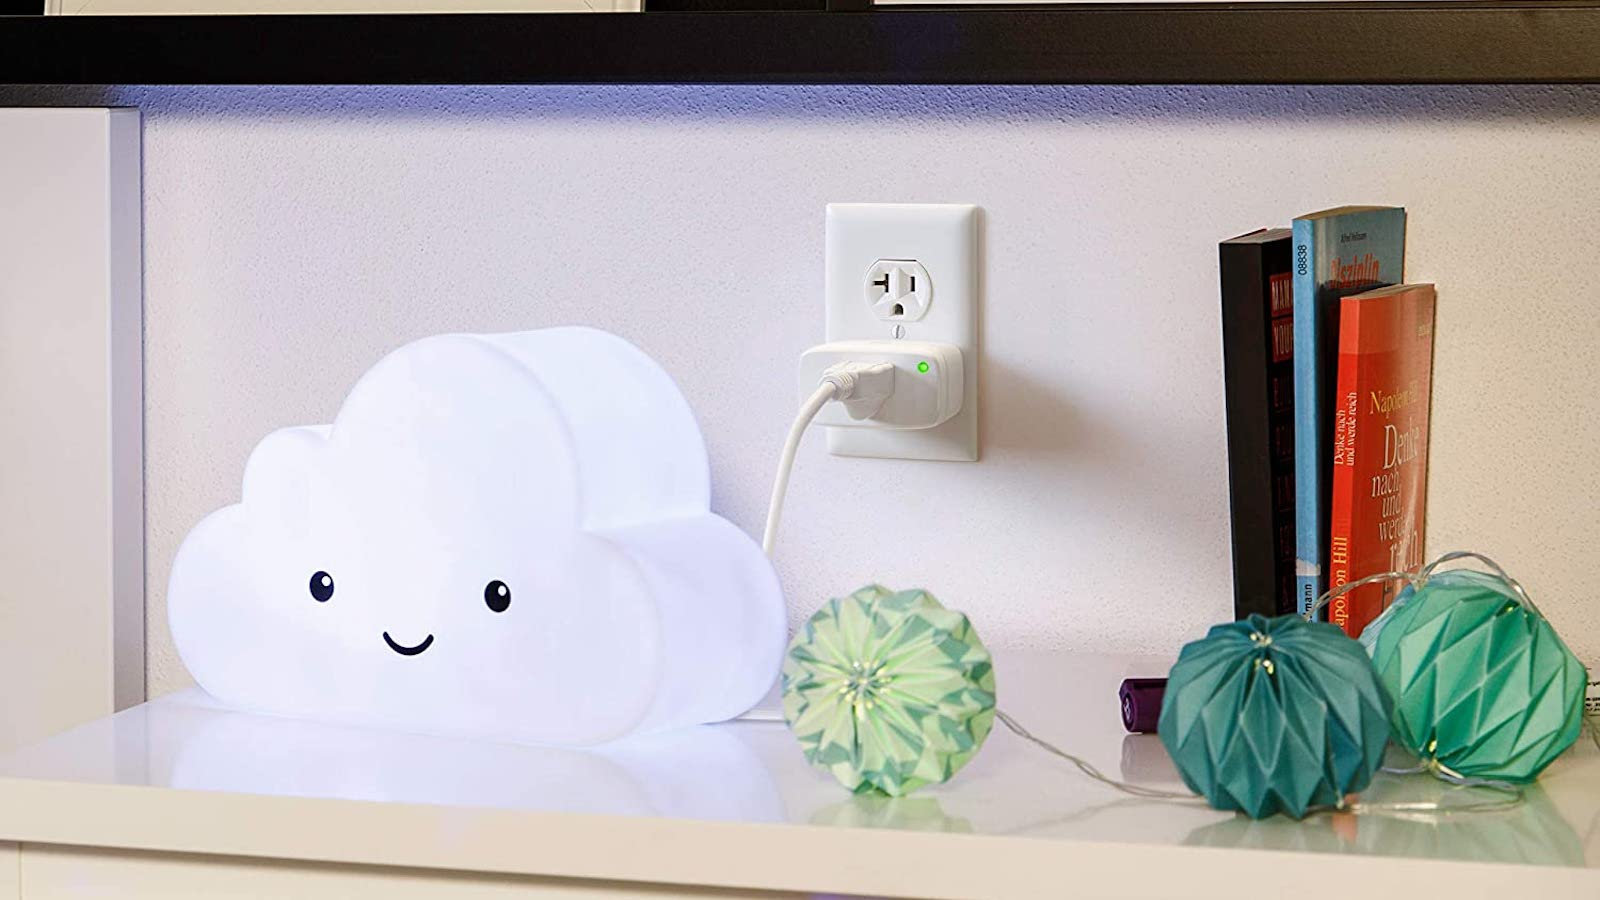 Eve Energy Smart Plug & Power Meter Intelligent Outlet manages your appliances from anywhere